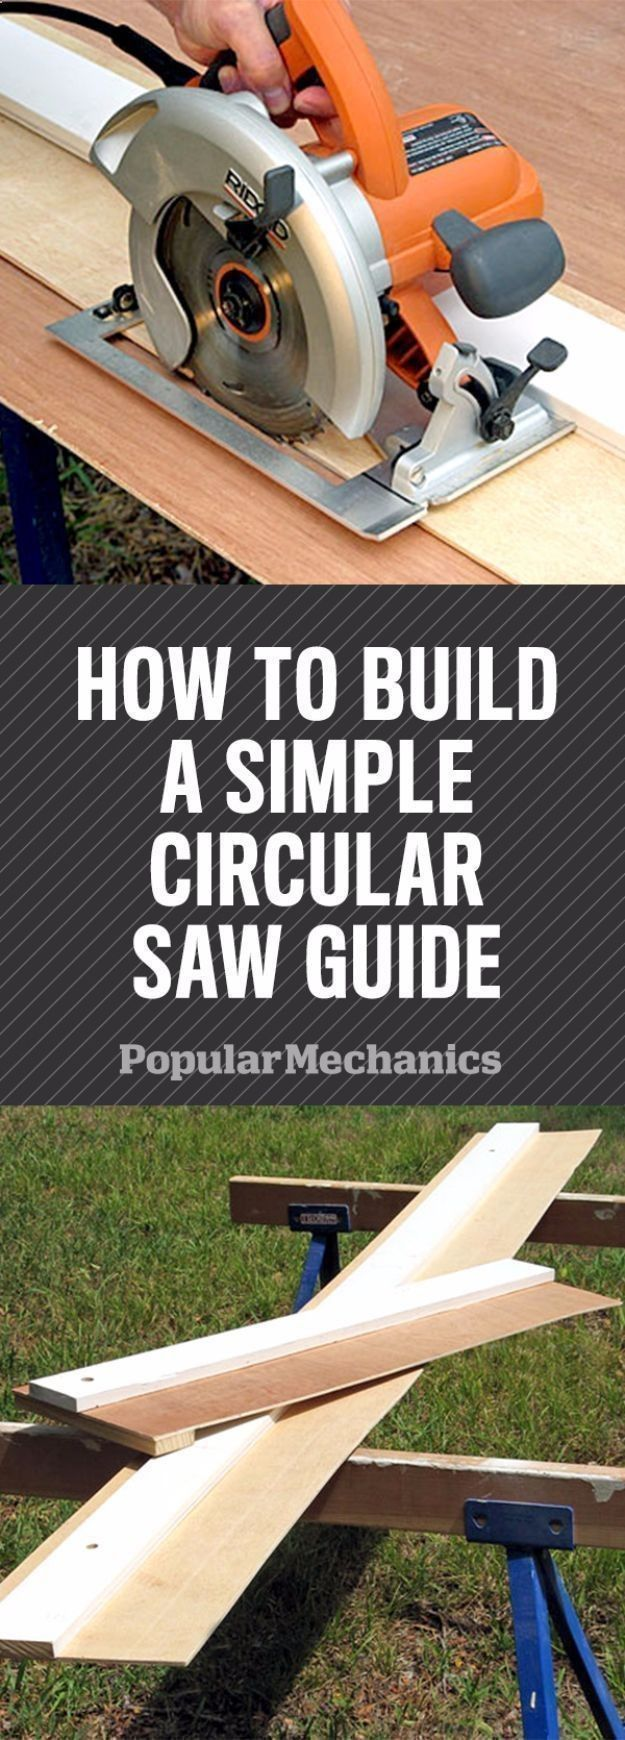 8 Best Diy Images On Pinterest Bricolage For The Home And Kitchens Outlet 4 Prong Wiring A Stove Http Www Hammerzone Com Wood Profit Woodworking Cool Tips Build Simple Circular Saw Guide Straighter Cuts Easy Ideas